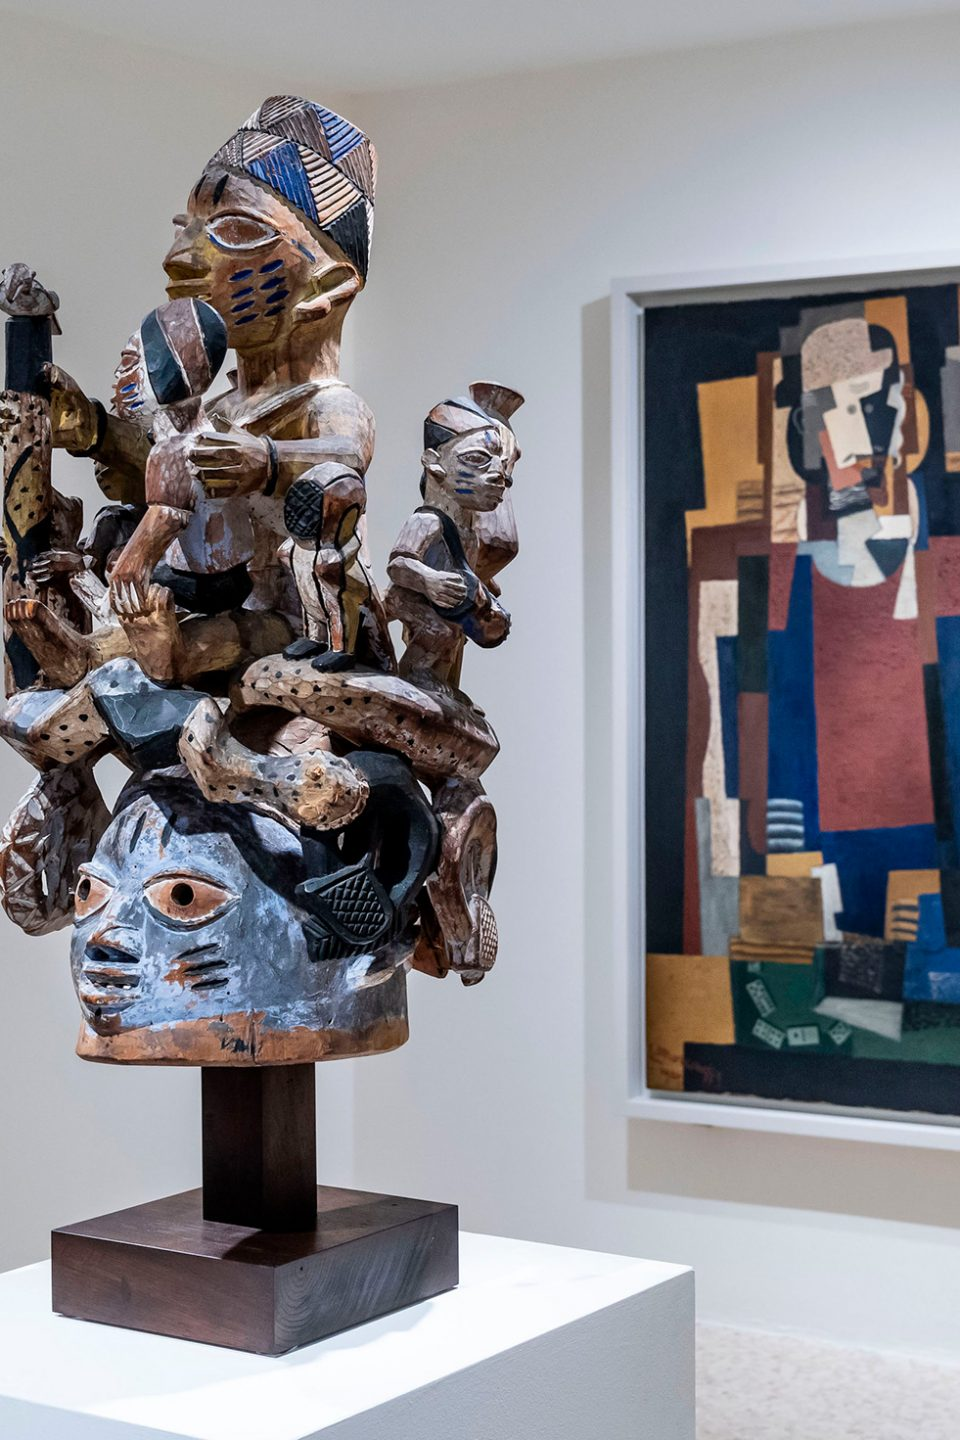 Peggy Guggenheim Loved Modernism, but She Also Collected Tribal Art